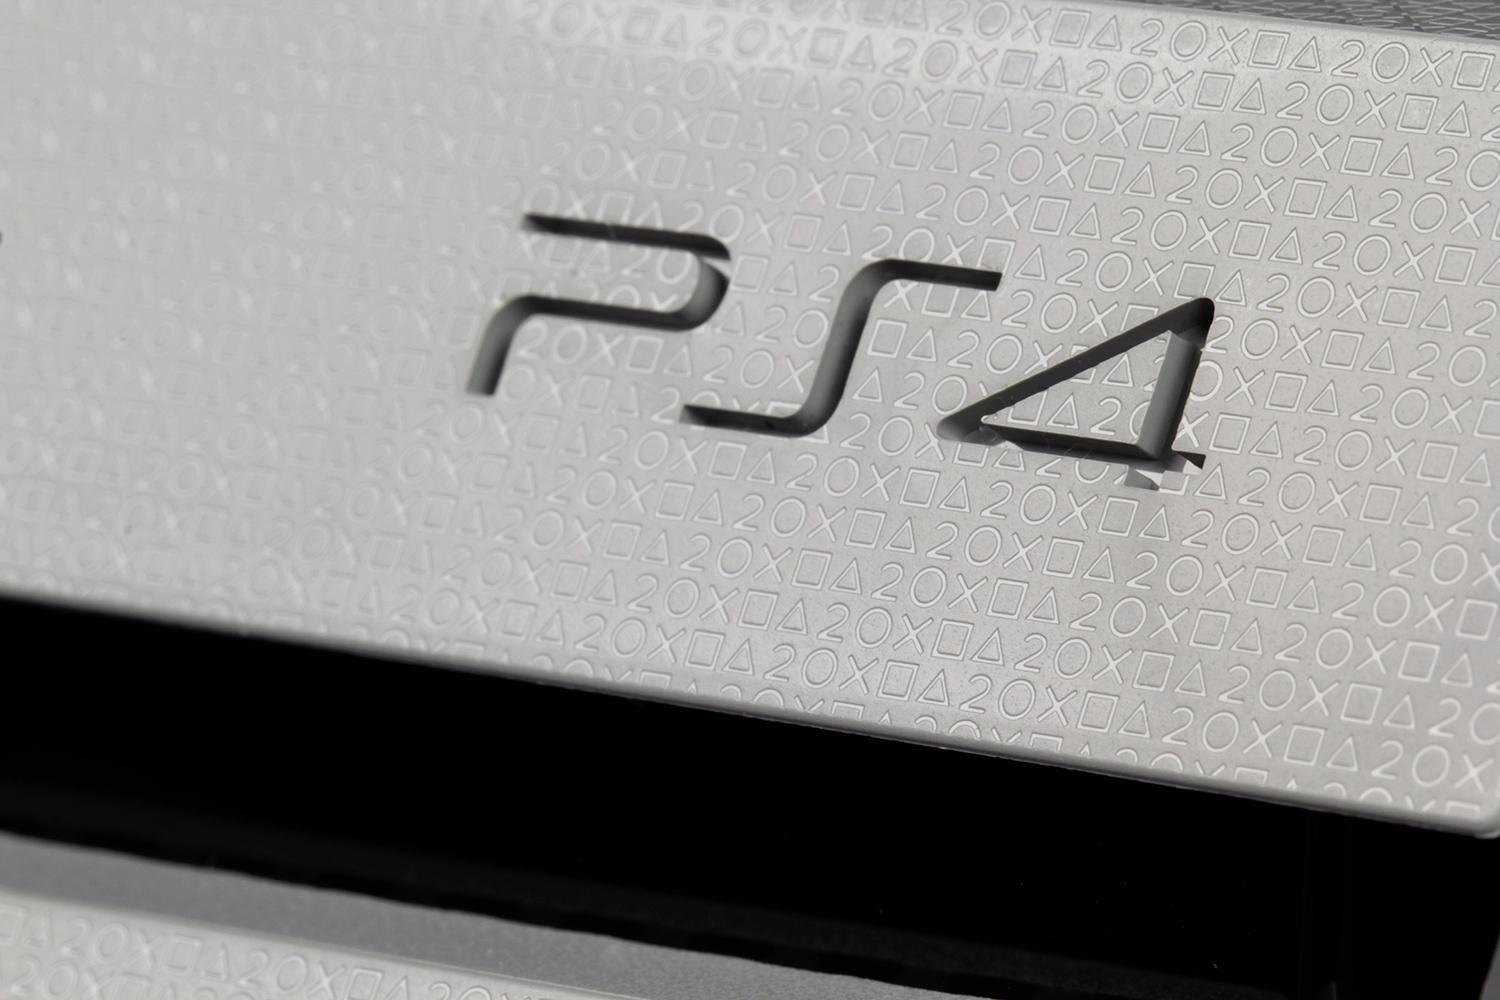 An unofficial app will soon let you stream PS4 games to your PC